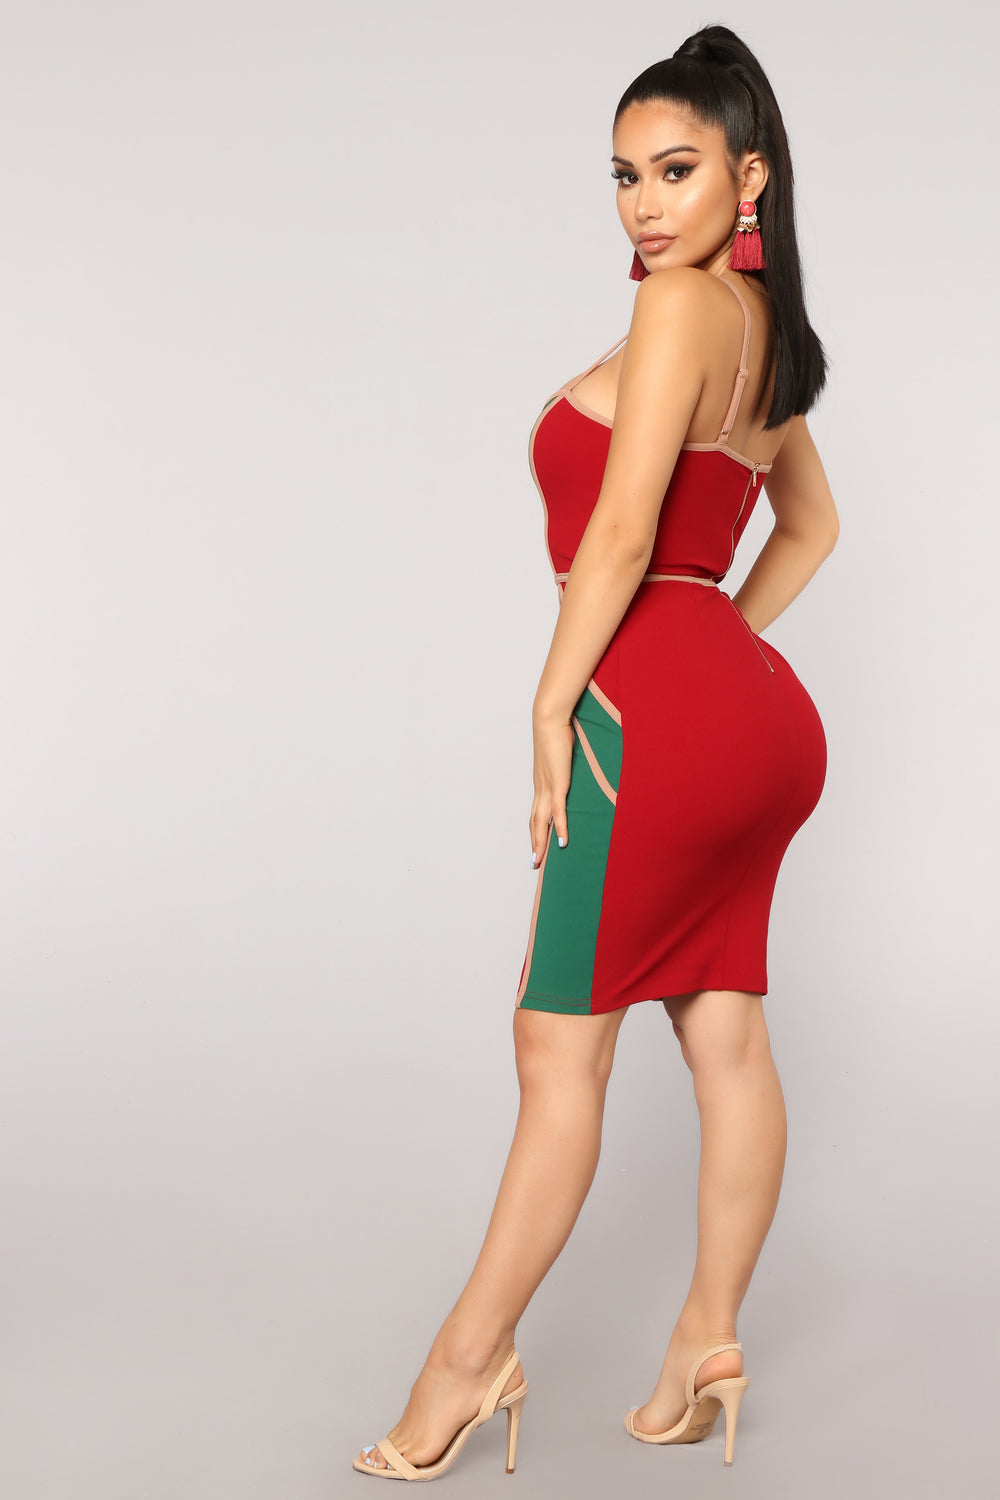 Sunset Boulevard Colorblock Dress - Red/combo